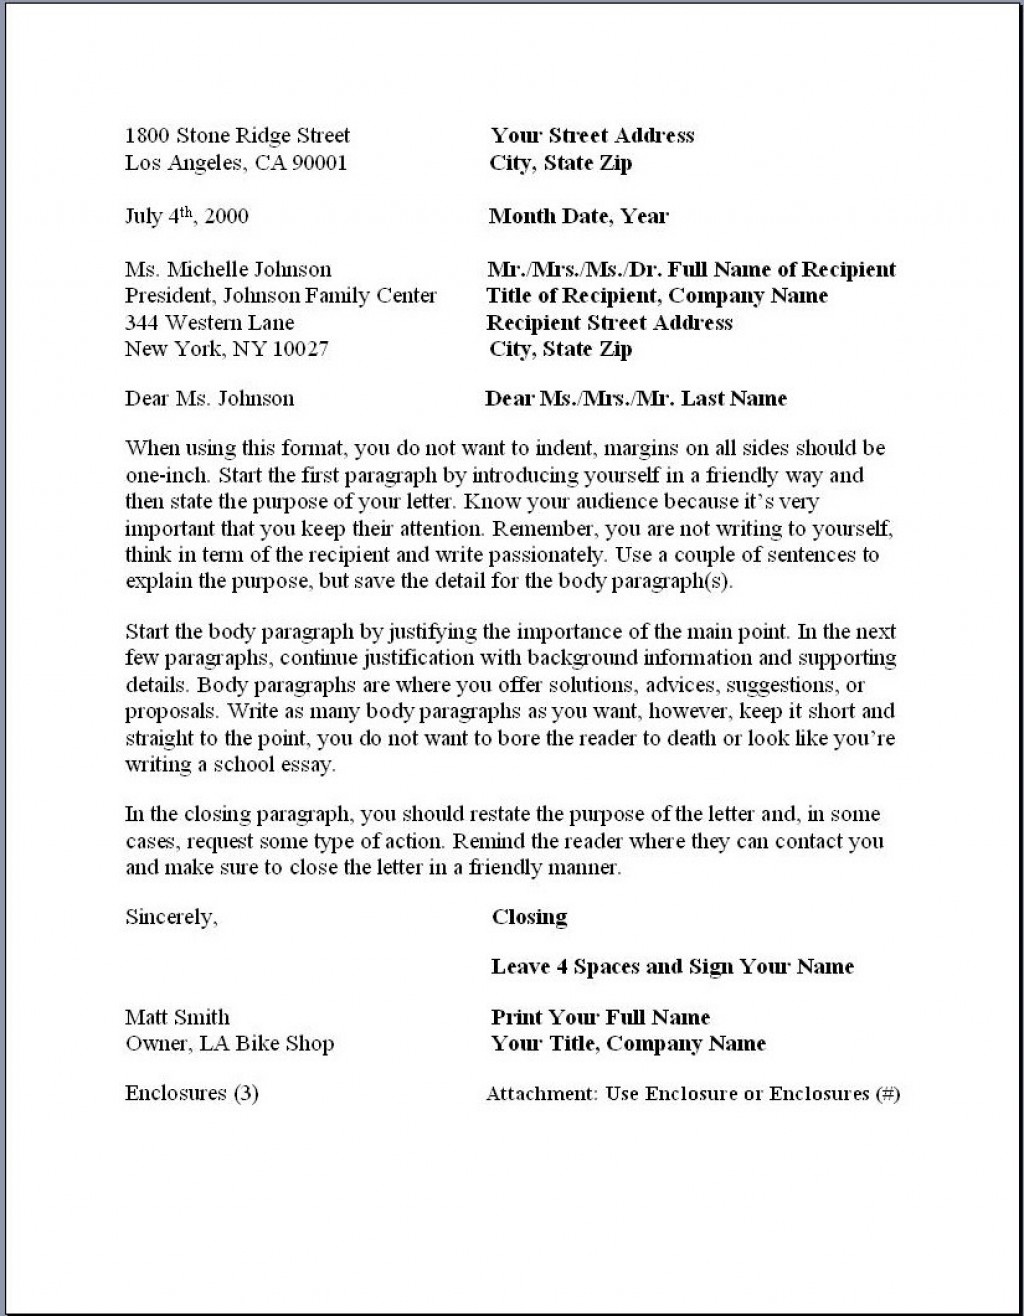 020 Essay Example Business Letterat Proper Formidable Form Paper Format Reflection Large